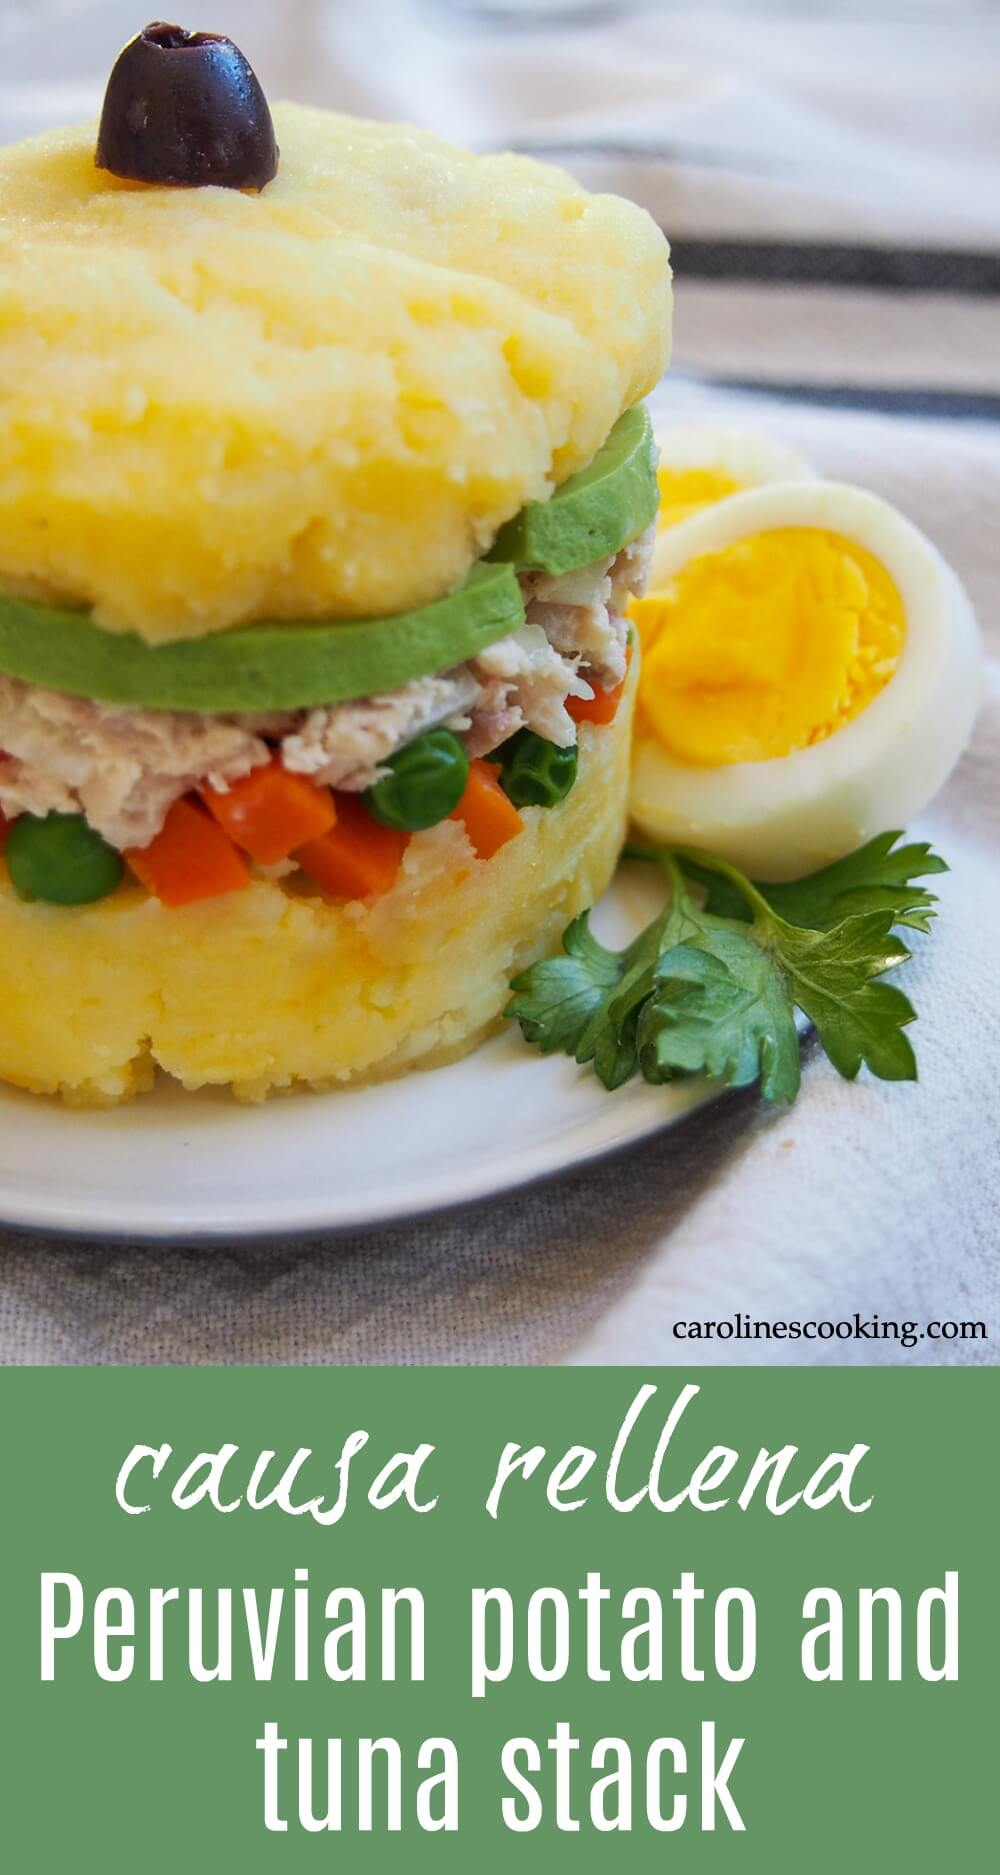 Causa rellena is a classic Peruvian appetizer that takes simple ingredients and transforms them into something elegant and delicious. This pretty layered stack is great for entertaining and more. #peruvian #potato #tuna #appetizer